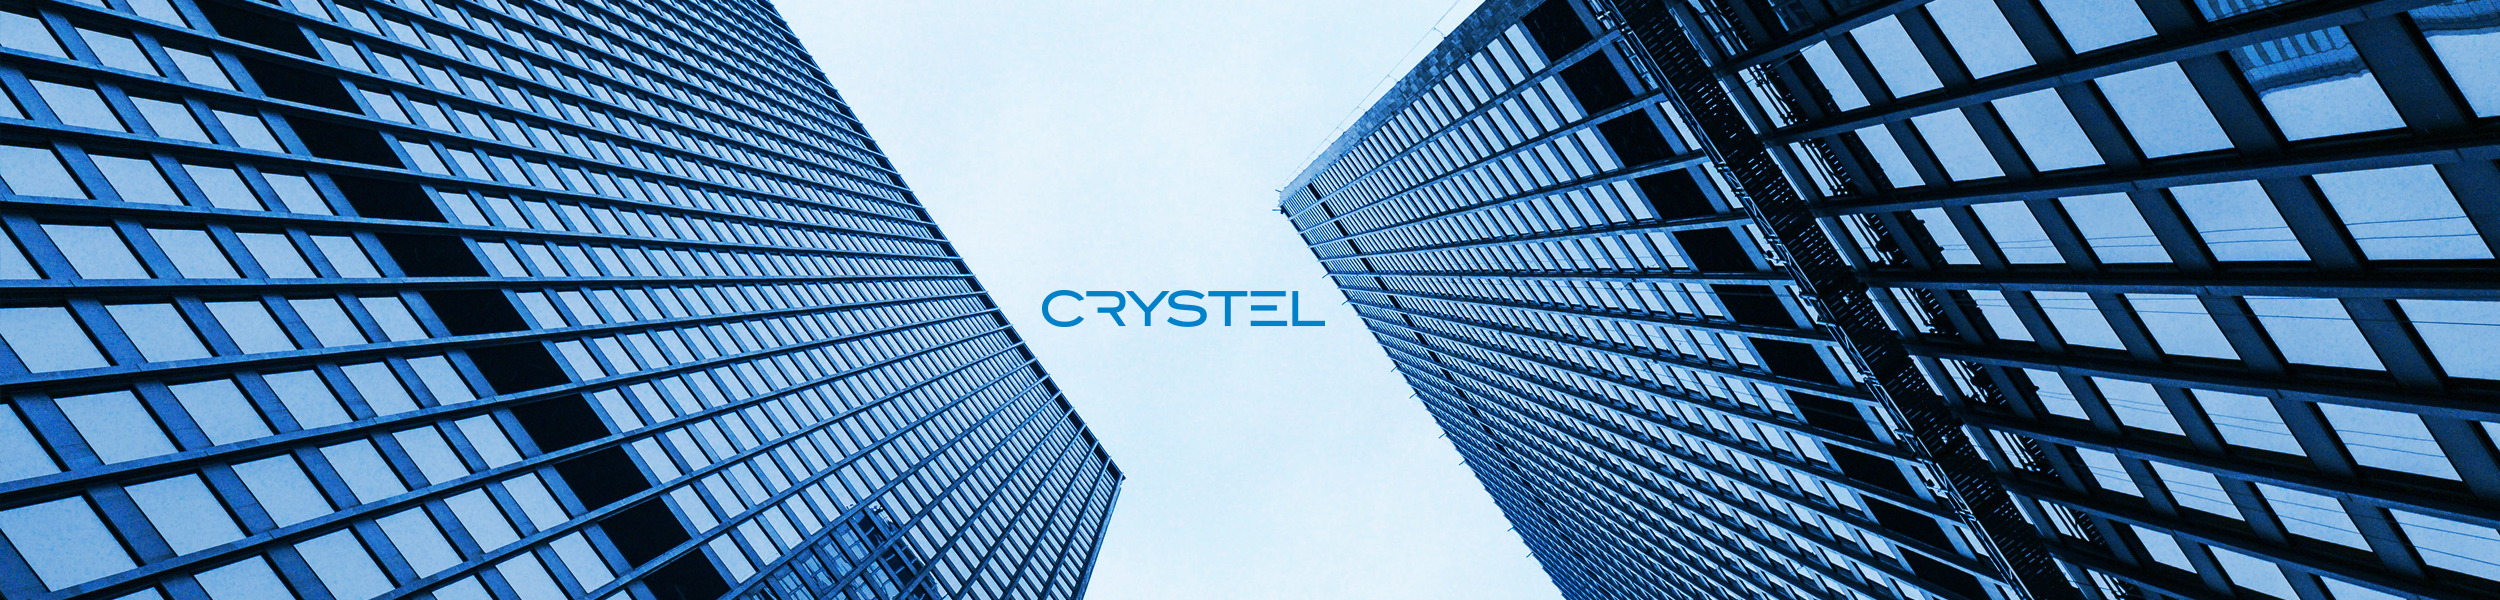 Crystel_Contact